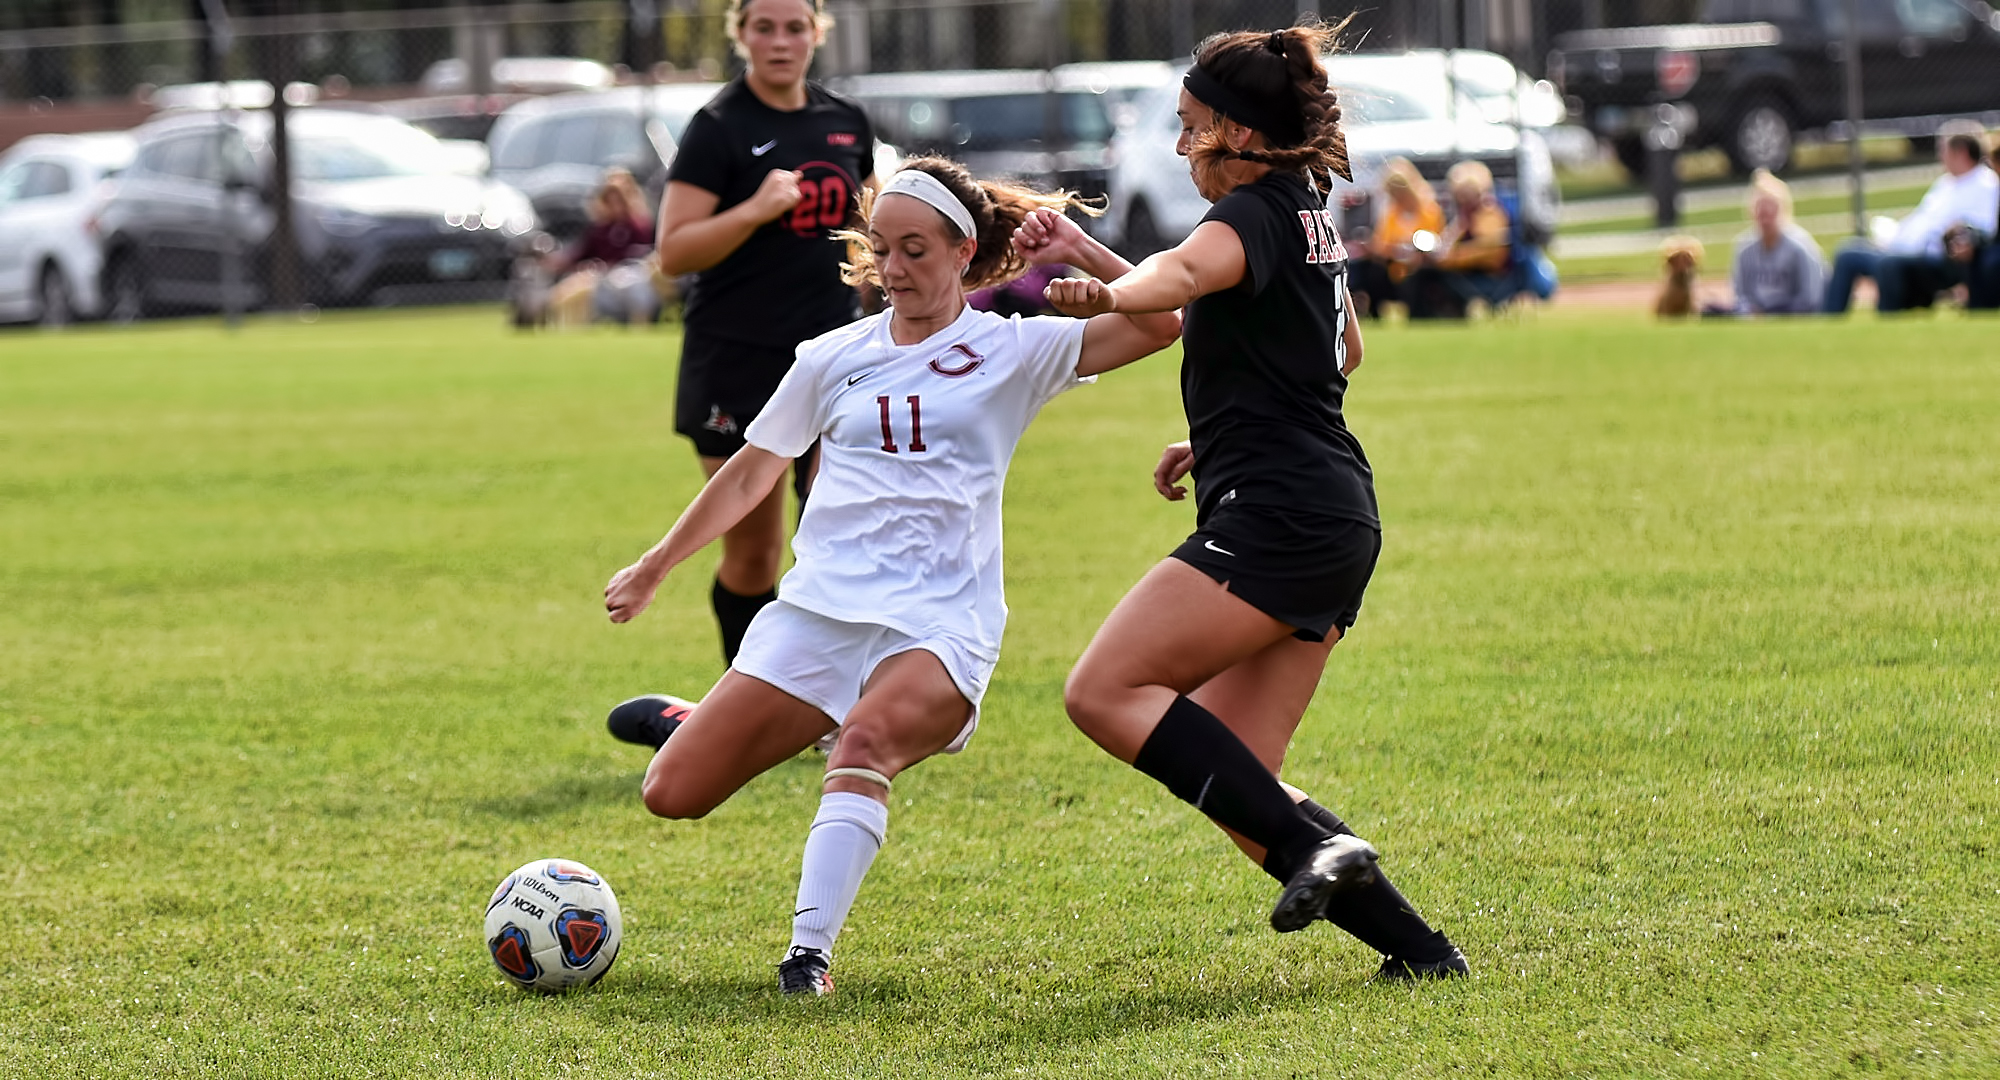 Cobbs Stay Undefeated with 7-0 Win